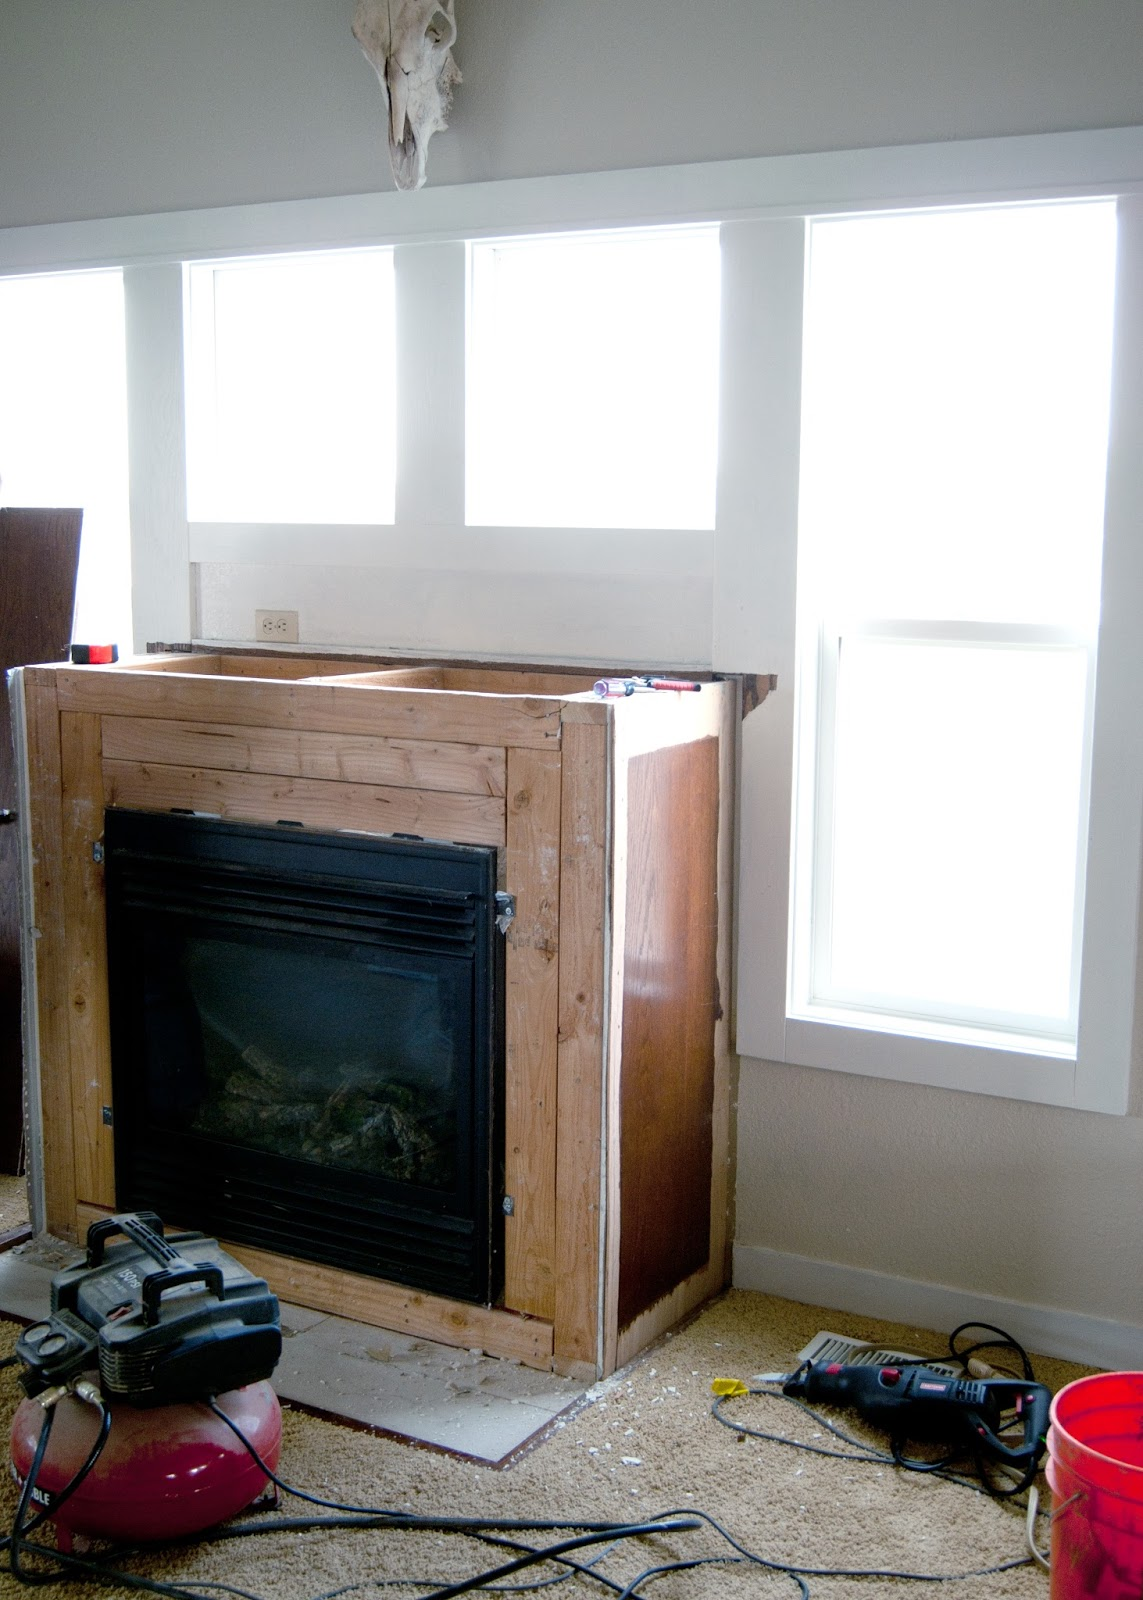 Fireplace Makeover - Reclaimed Wood Mantel - after demo